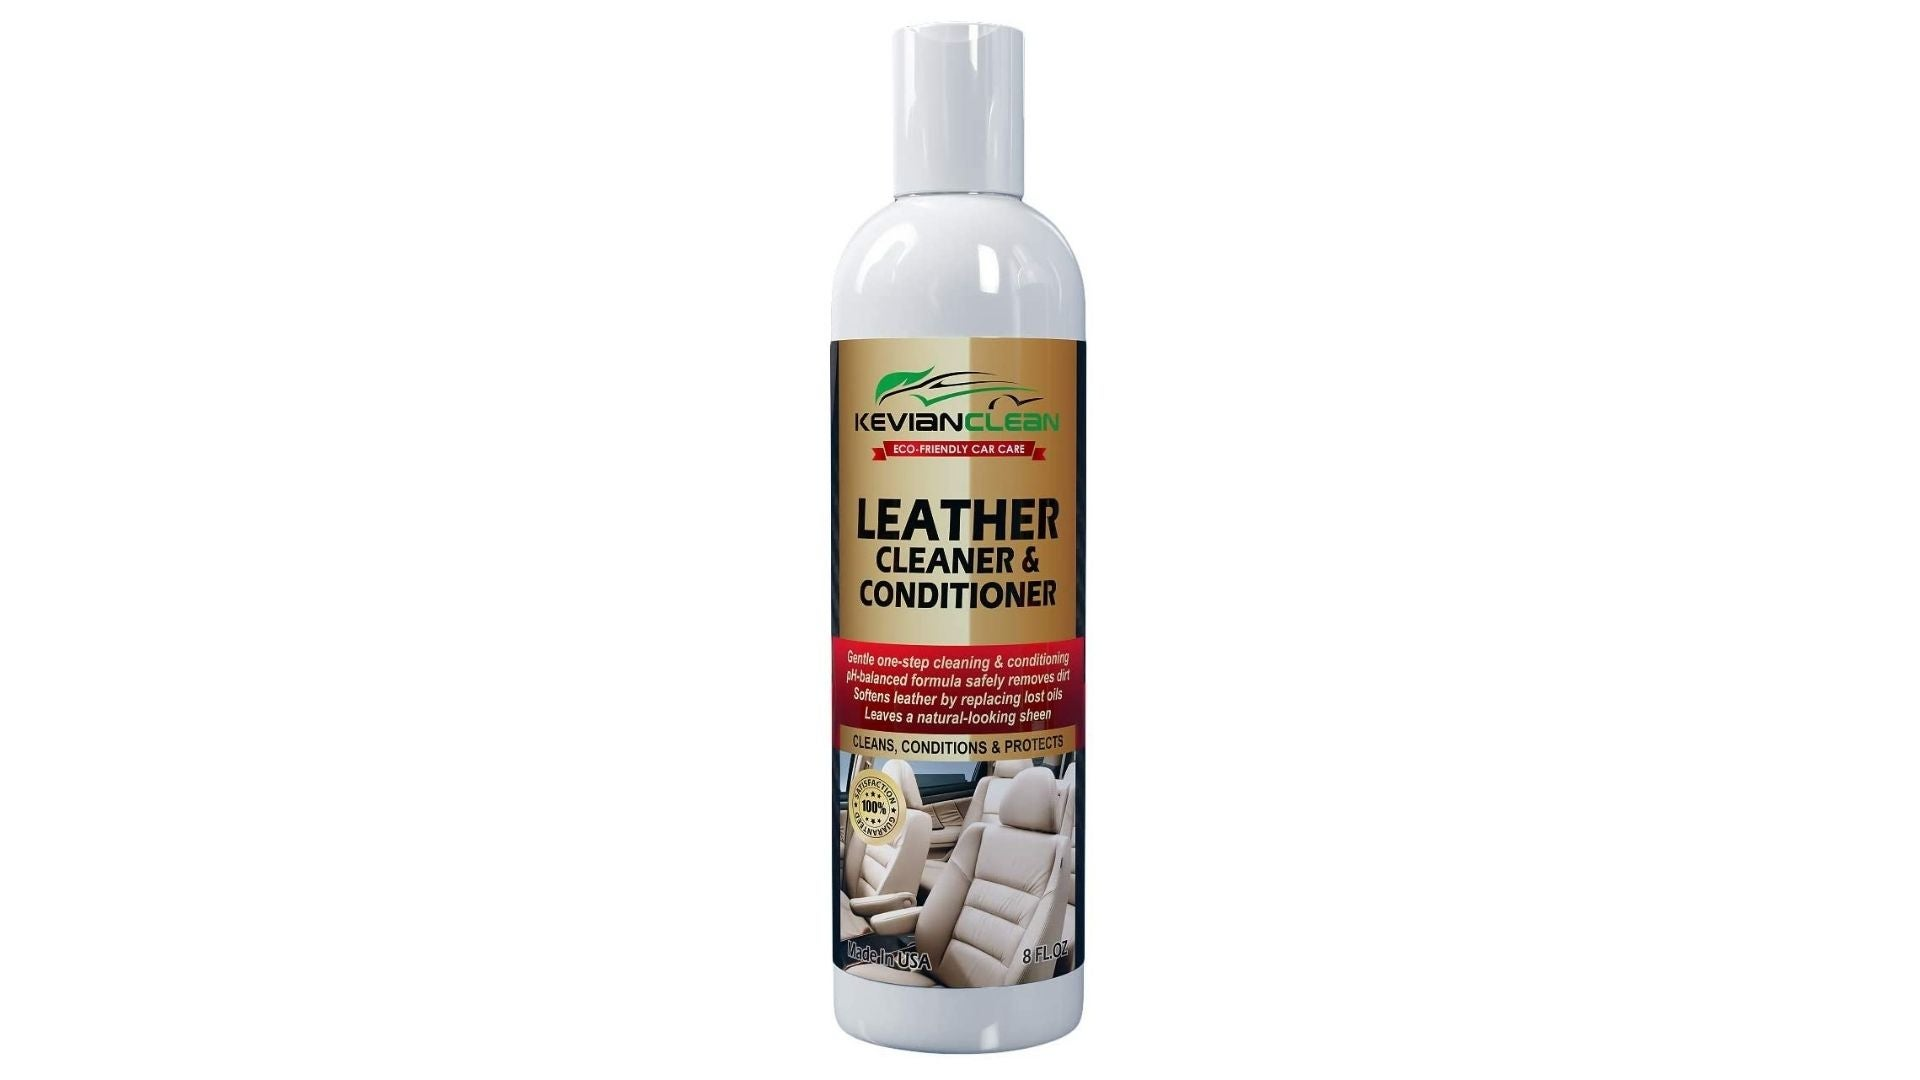 KevianClean Leather Cleaner & Conditioner